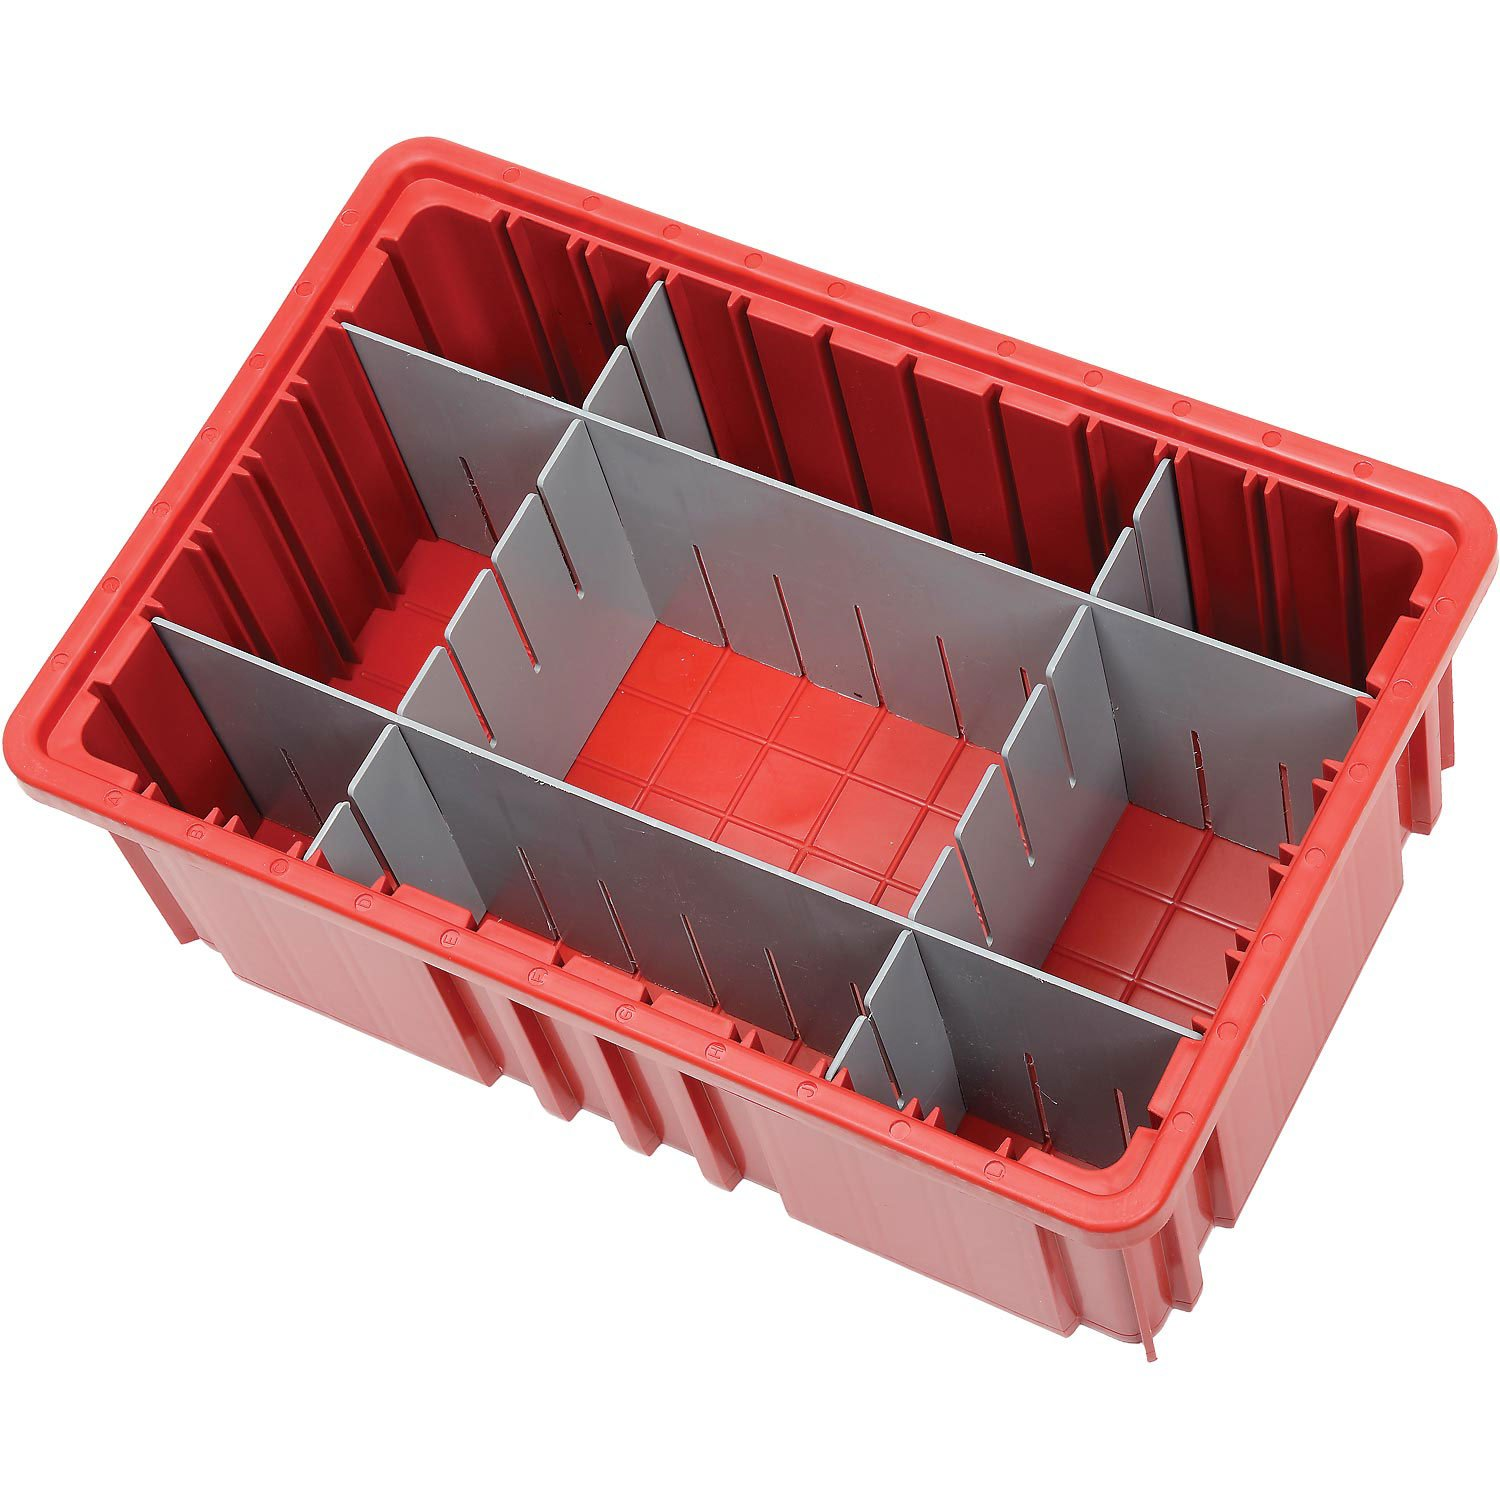 Plastic Dividable Grid Container, 16-1/2''L x 10-7/8''W x 6''H, Red - Lot of 8